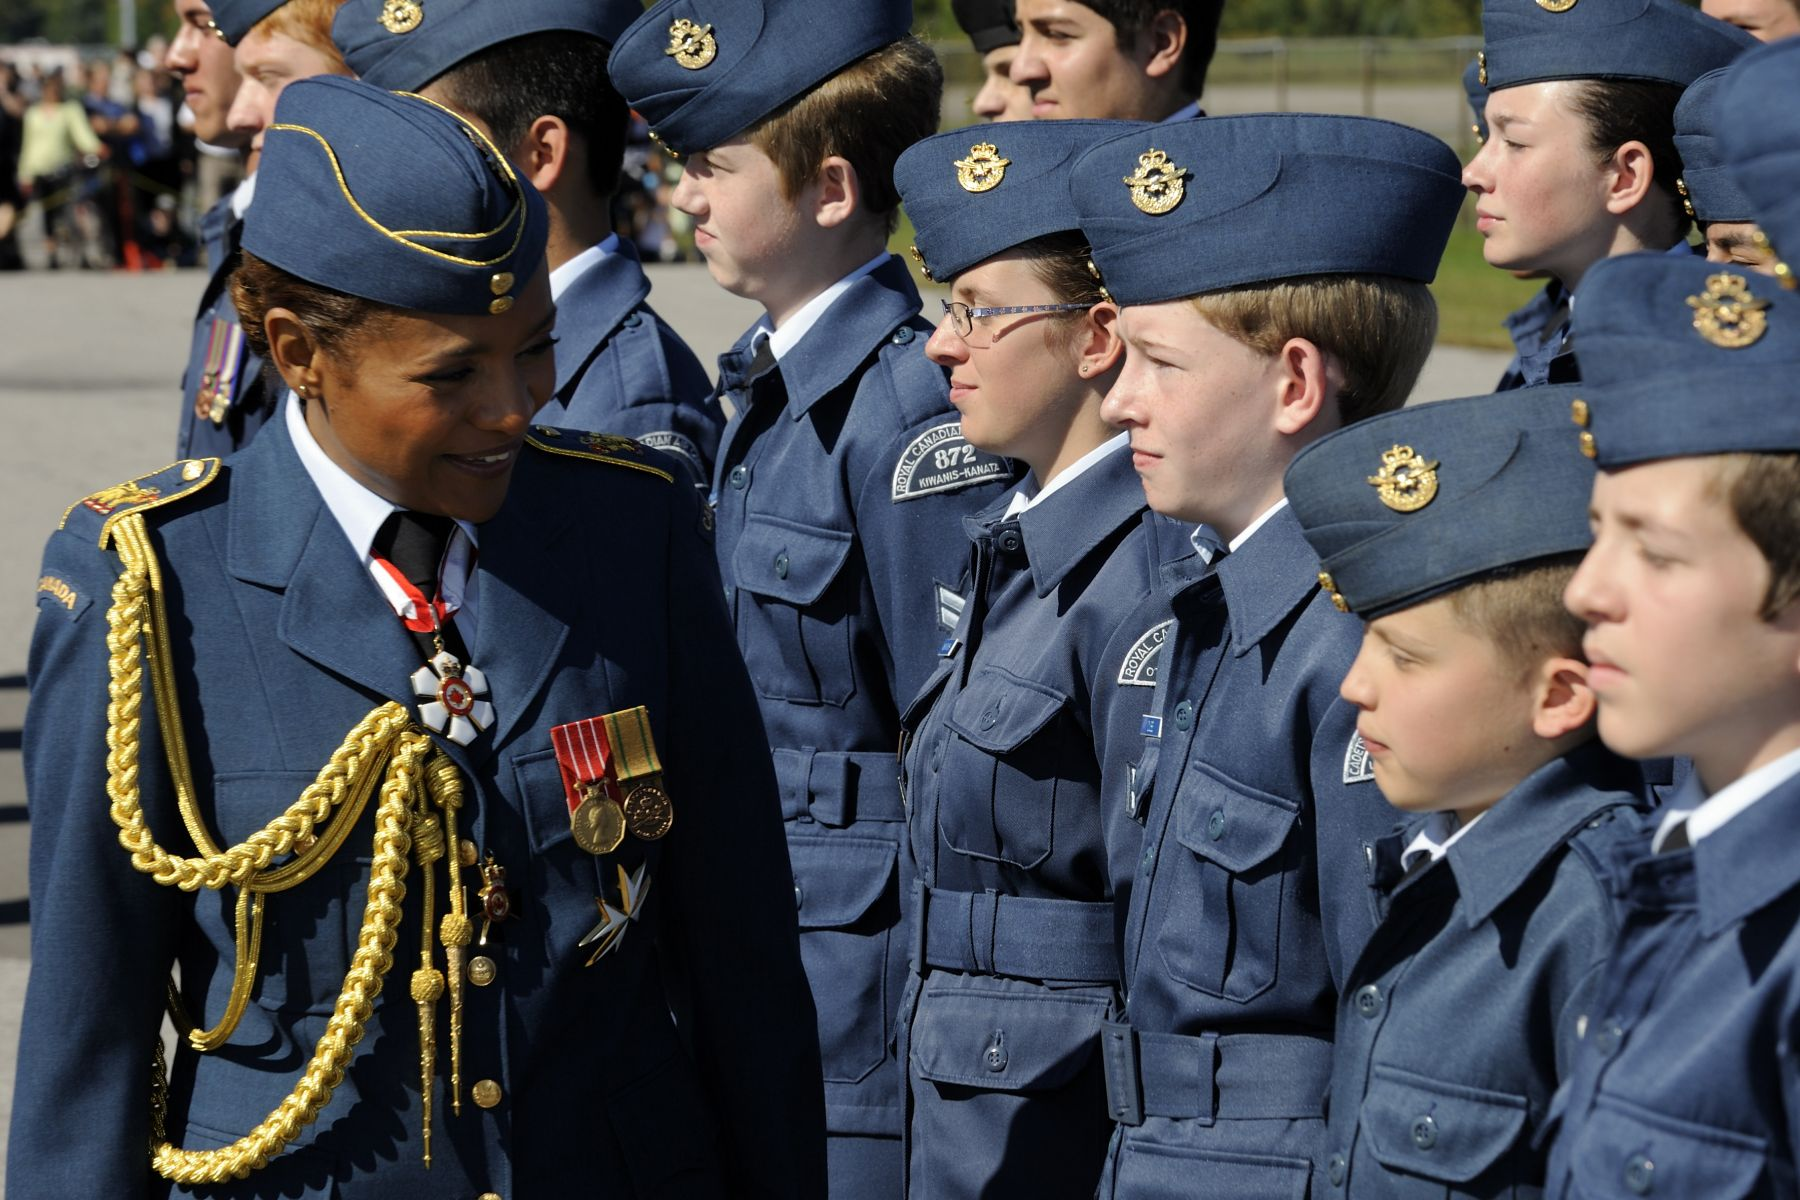 Her Excellency also inspected the Air Cadets.